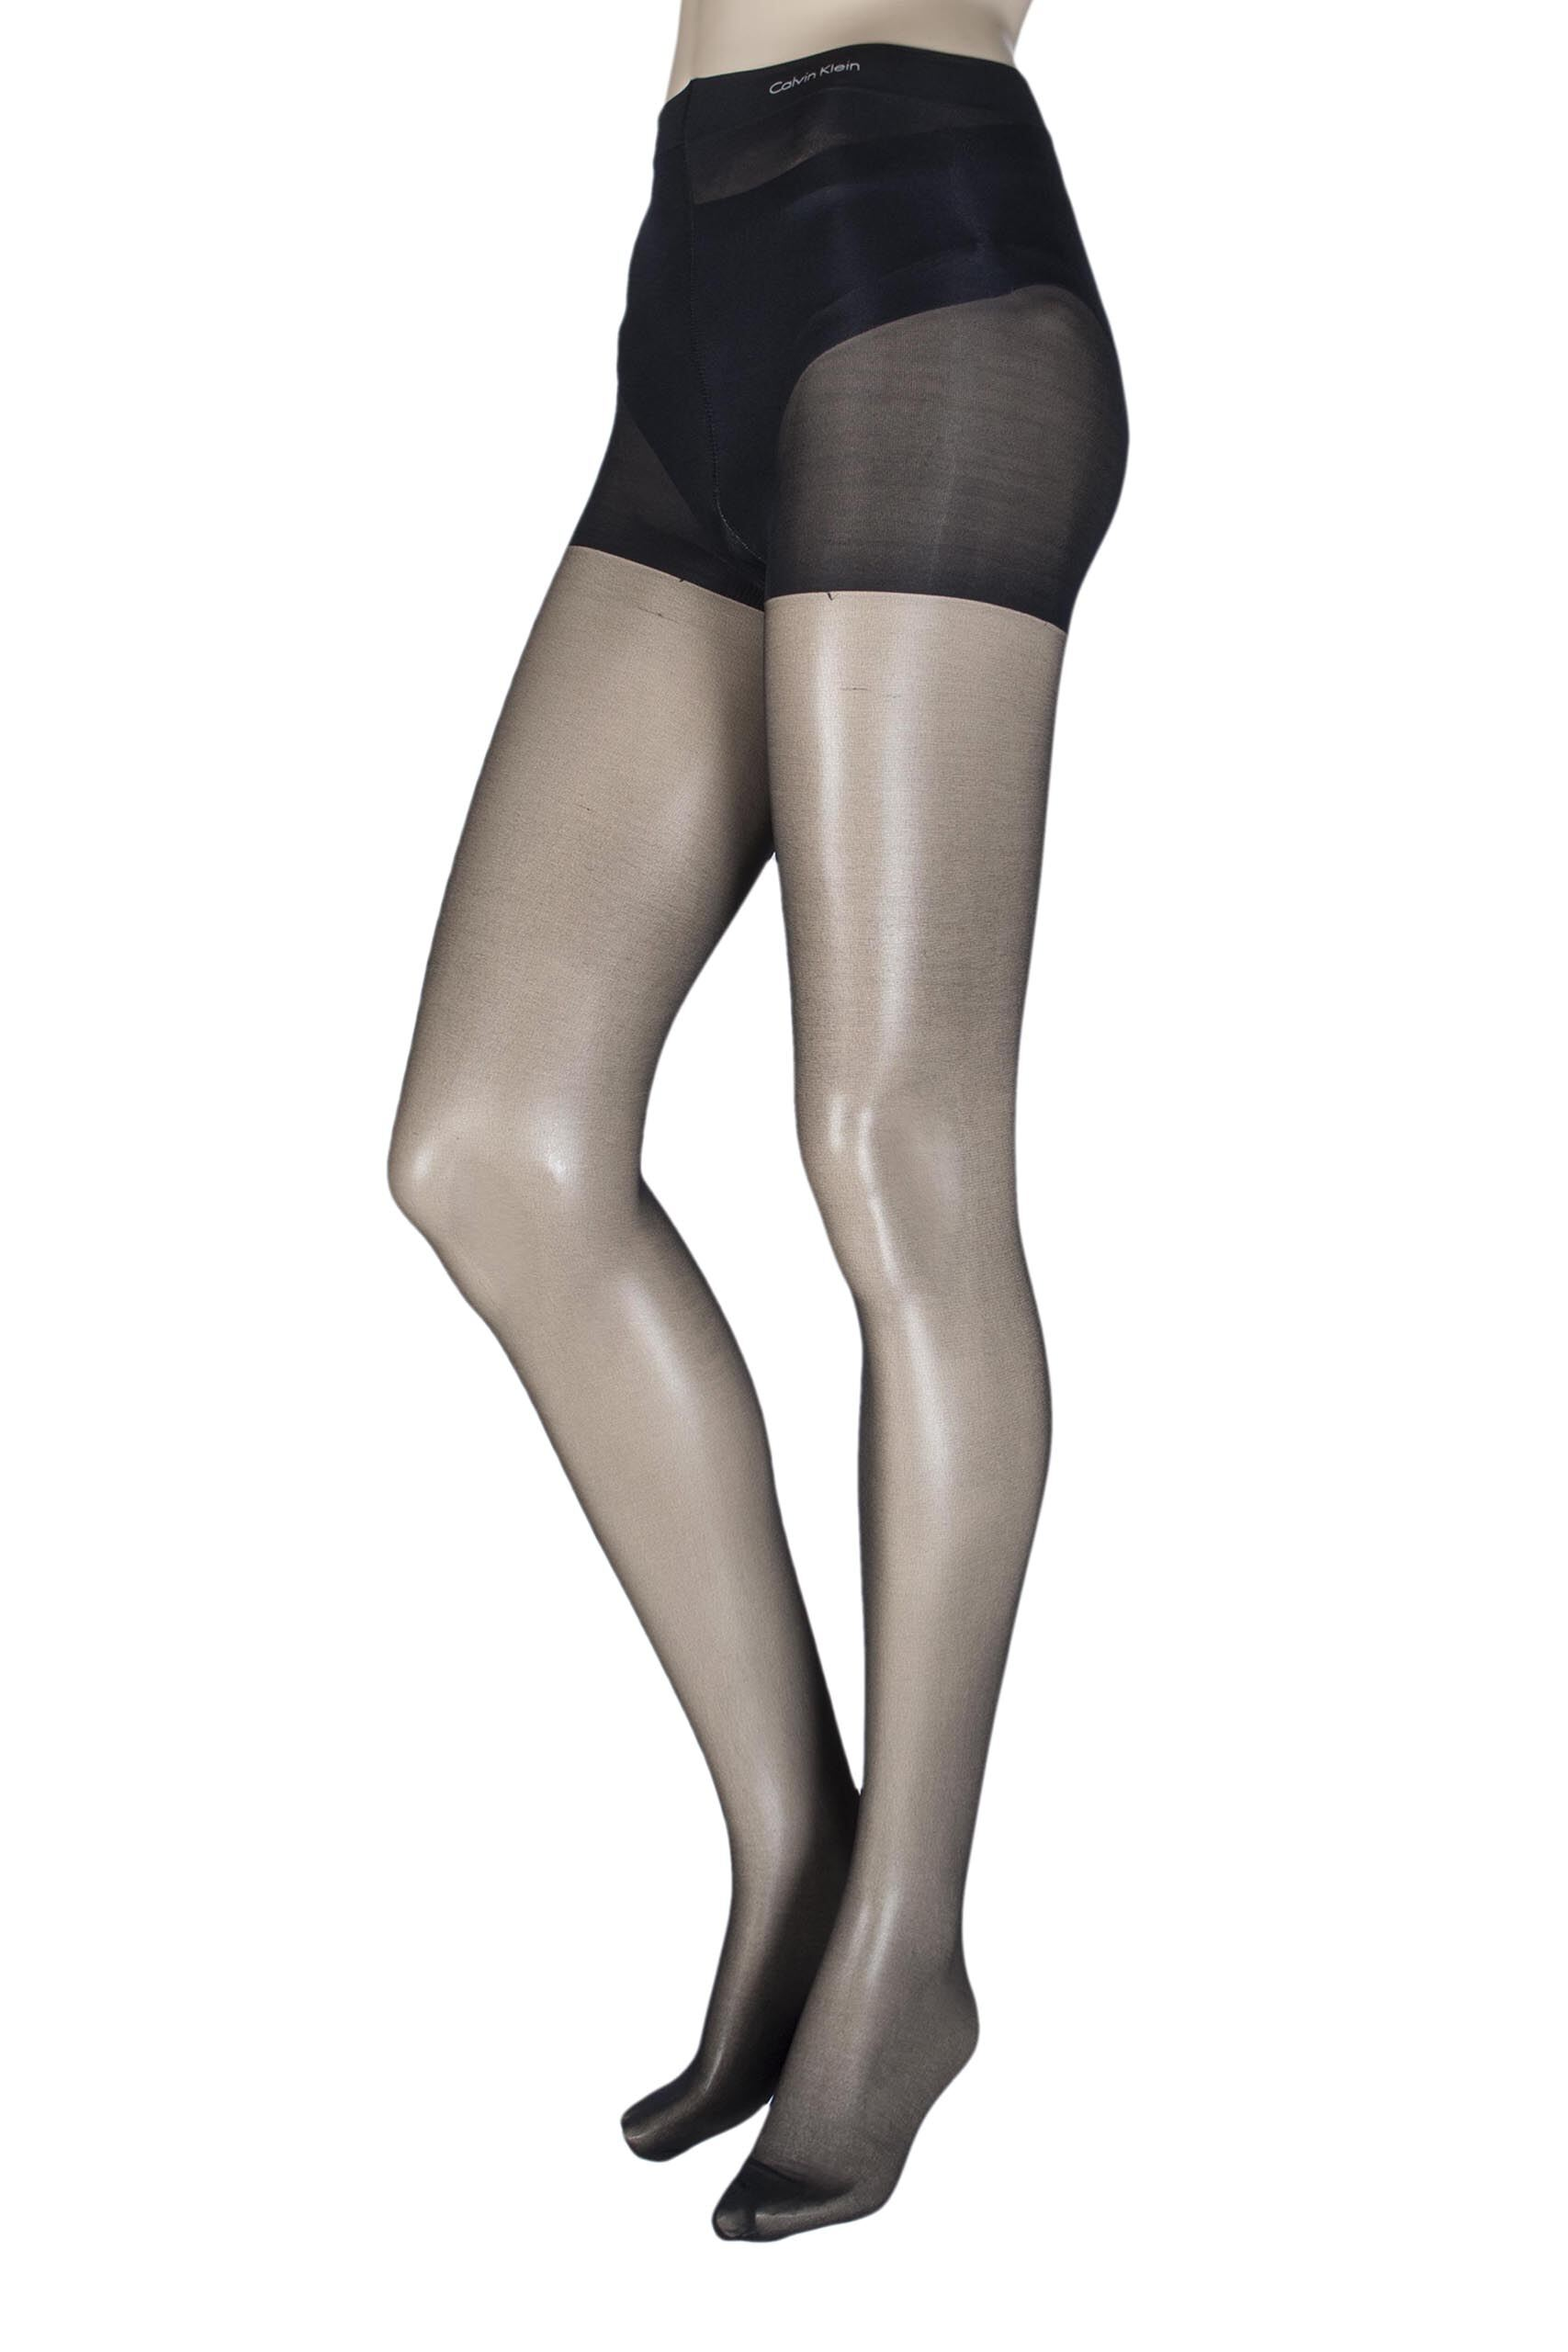 Image of 1 Pair Black Ultra Bare Infinate Sheer Tights with Control Top Ladies Extra Large - Calvin Klein